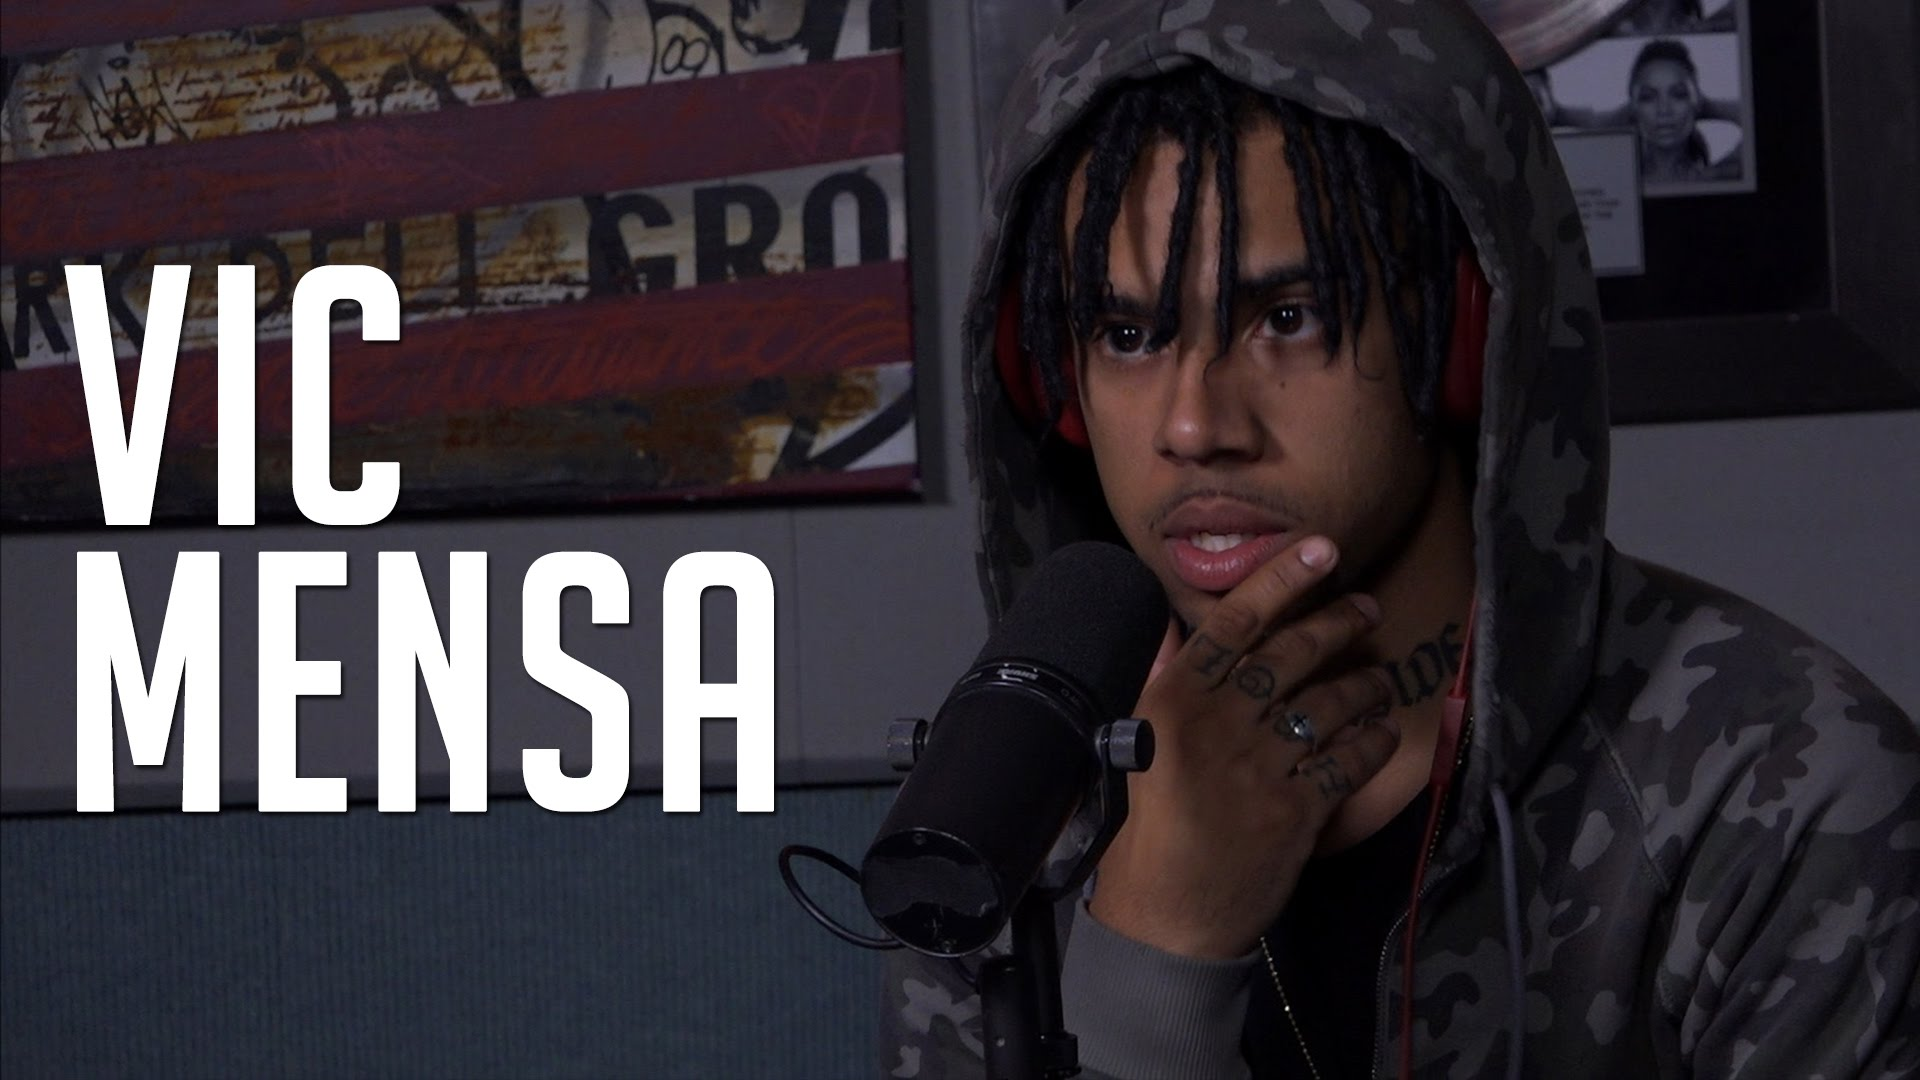 Vic Mensa Talks New EP, Working With Kanye & More On 'Ebro In The Morning' (VIDEO)